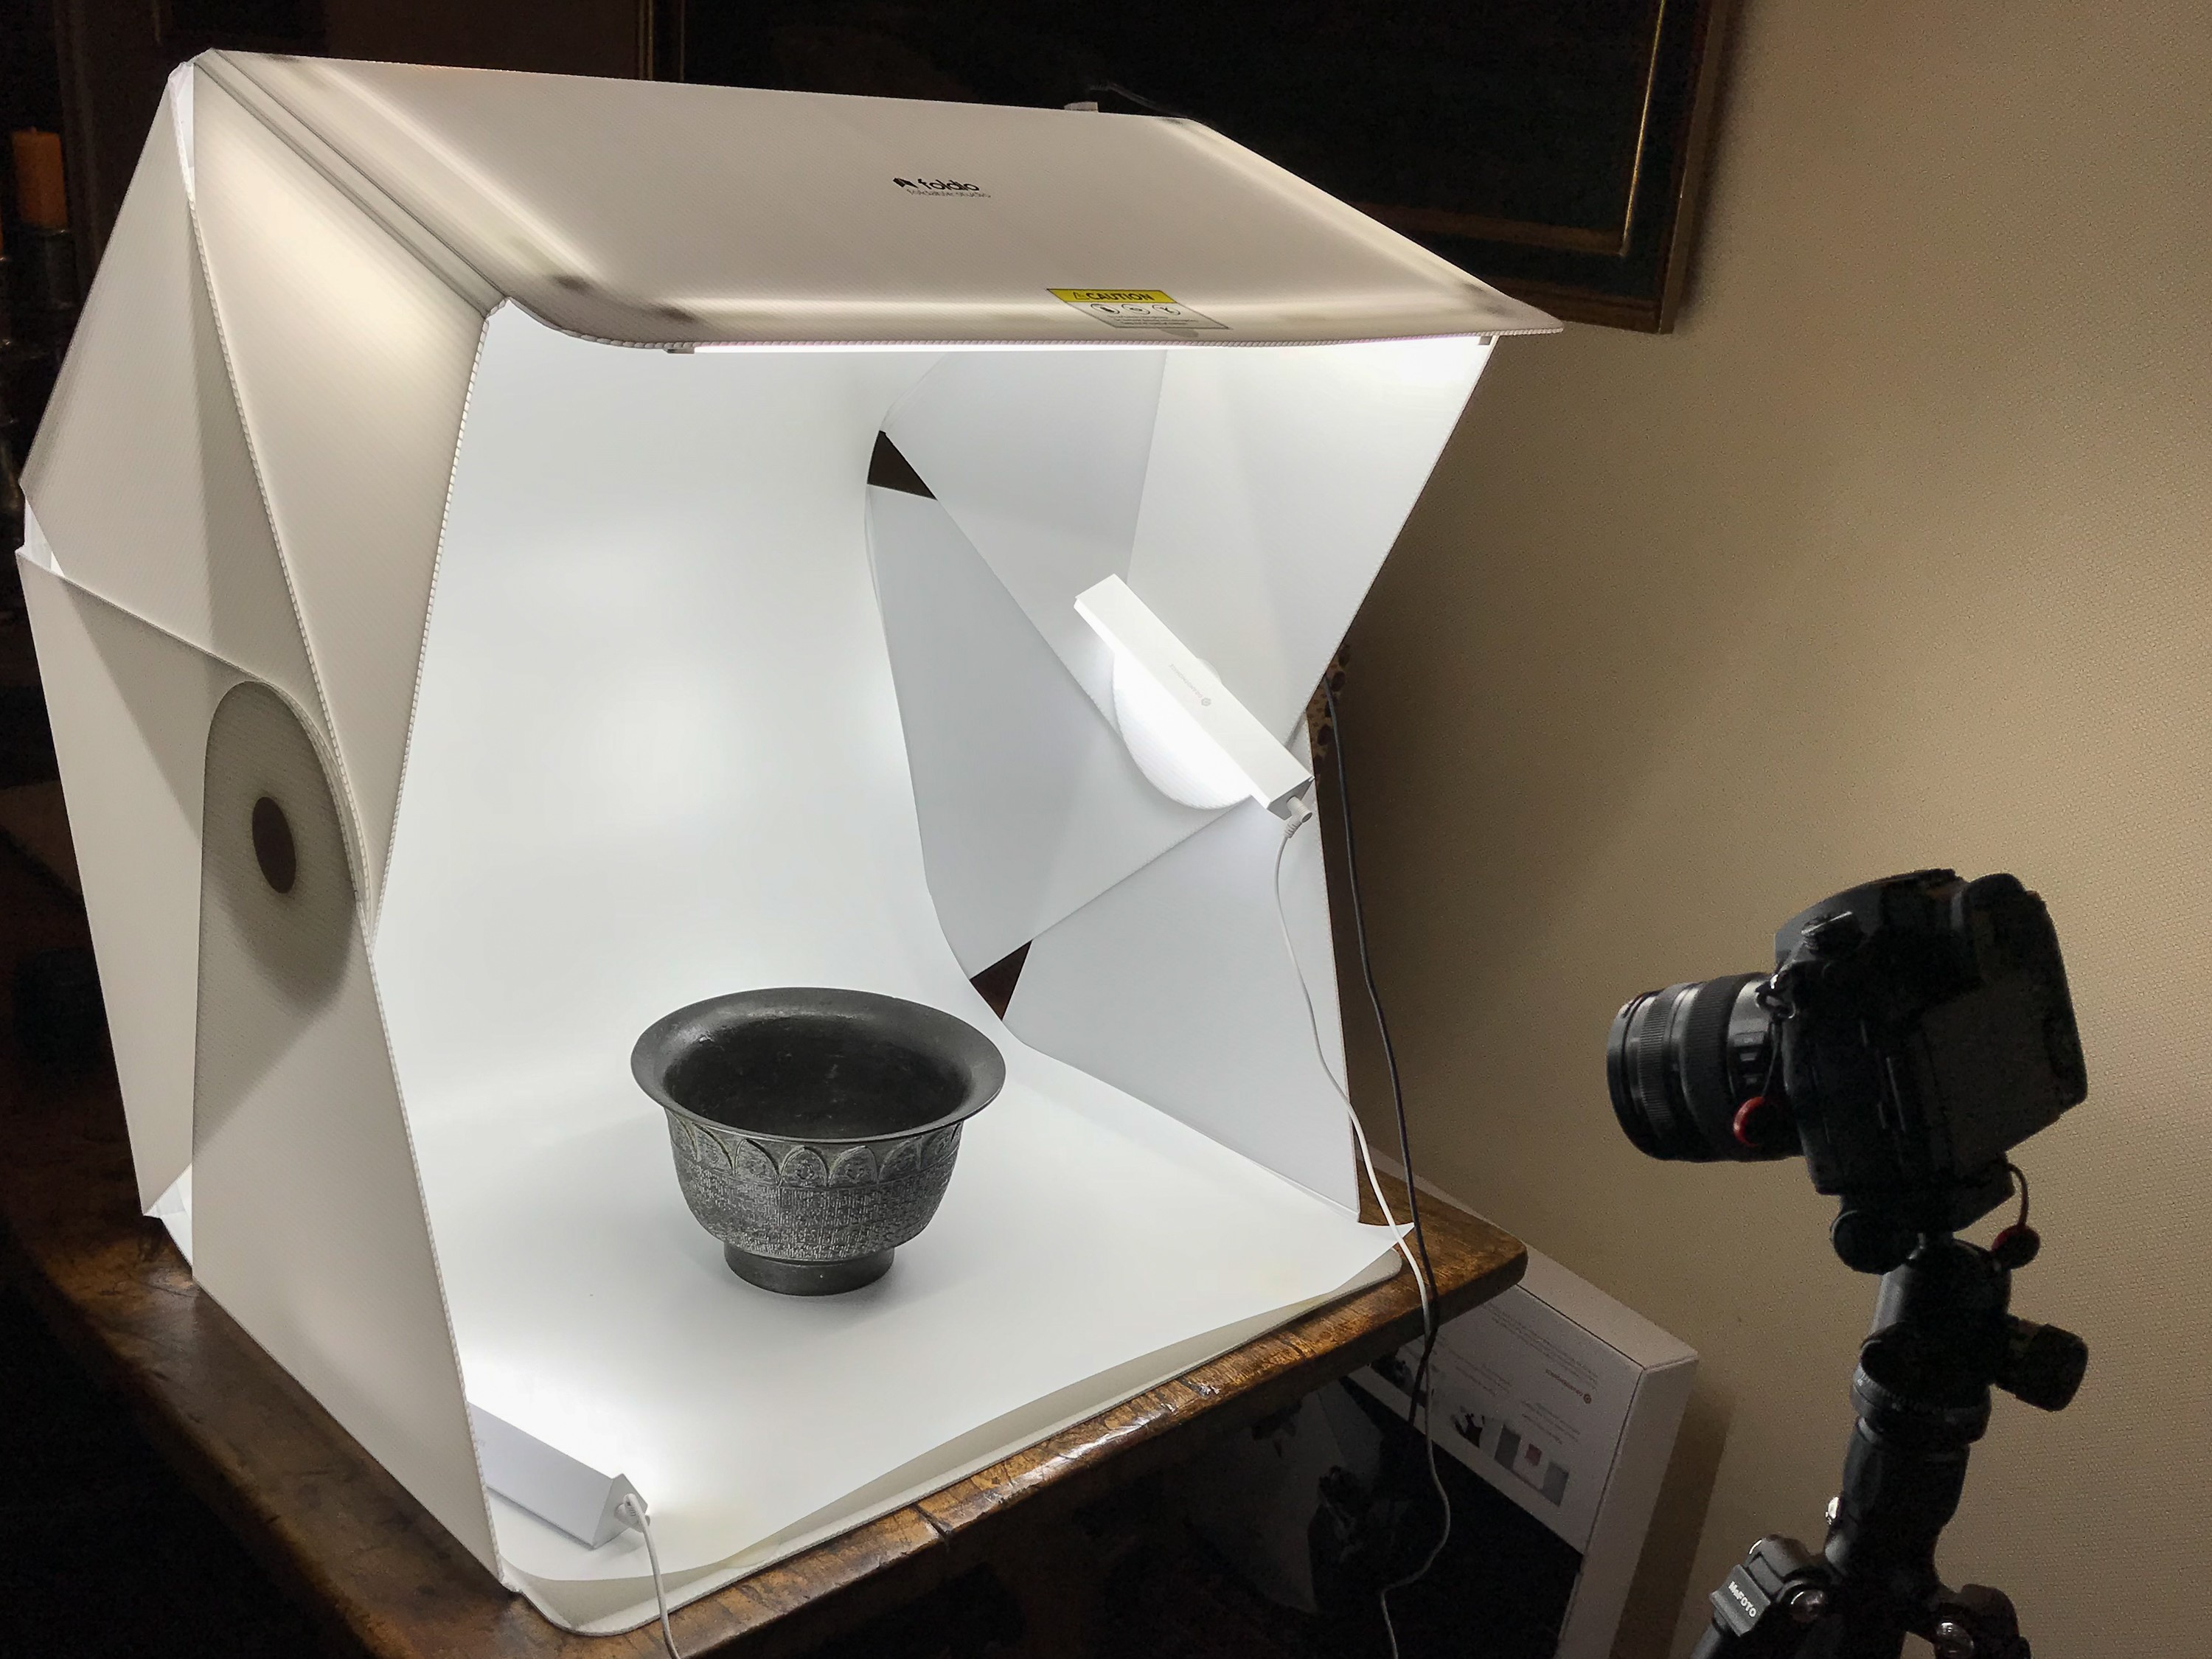 easy product photography with the foldio 3 from orangemonkie - Set up